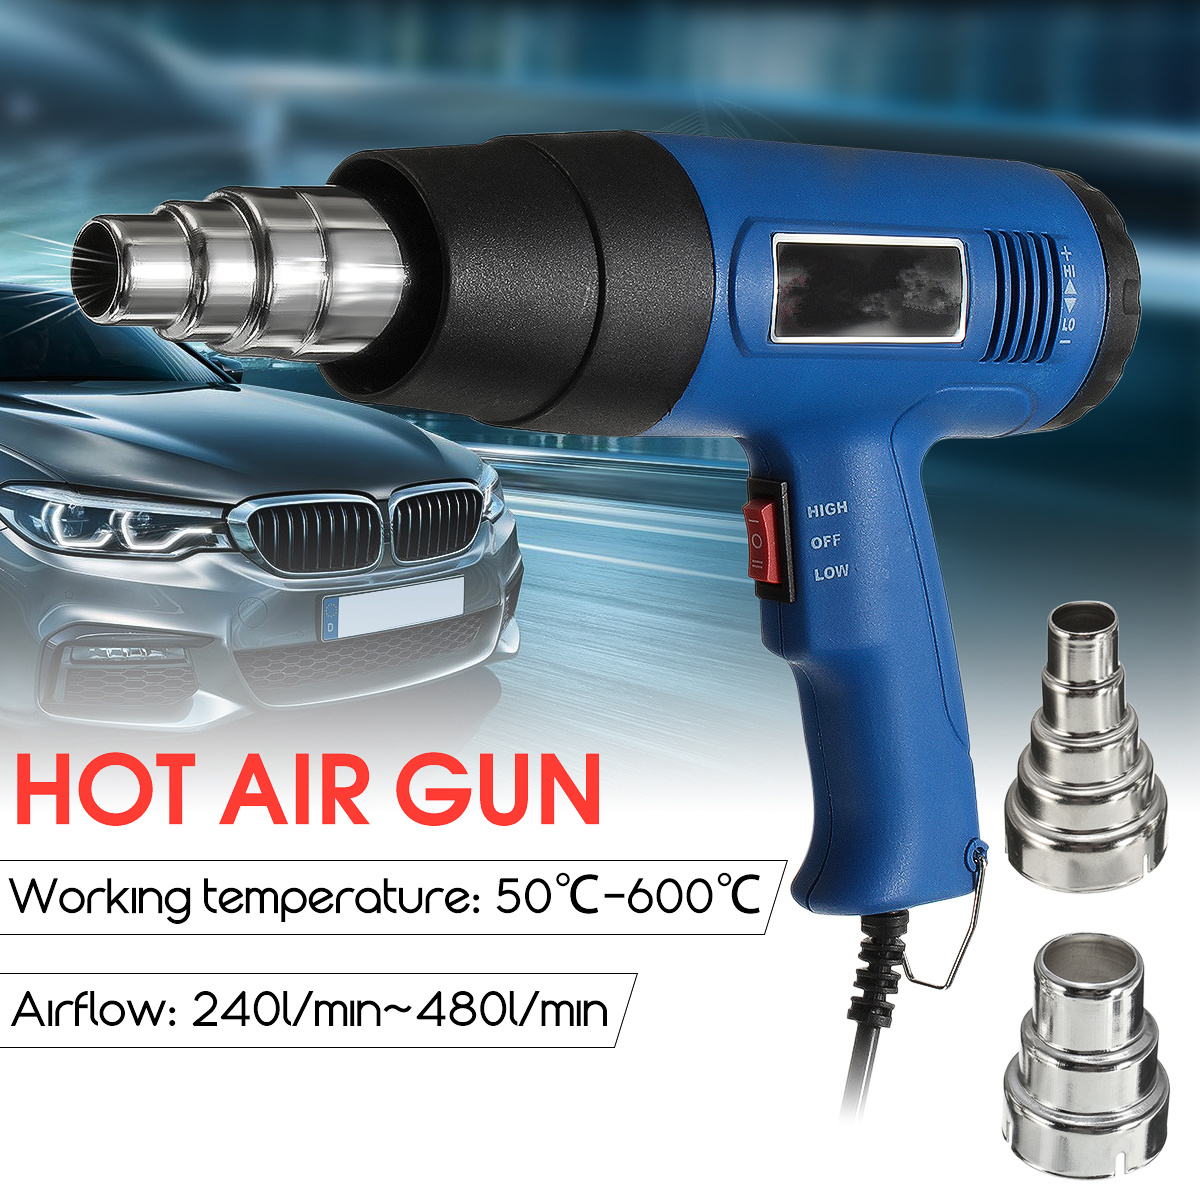 NEW Hot Air Heat Gun Blower 1800W 600 degree Paint Drying Striping Tool with 2 Nozzles цена 2017